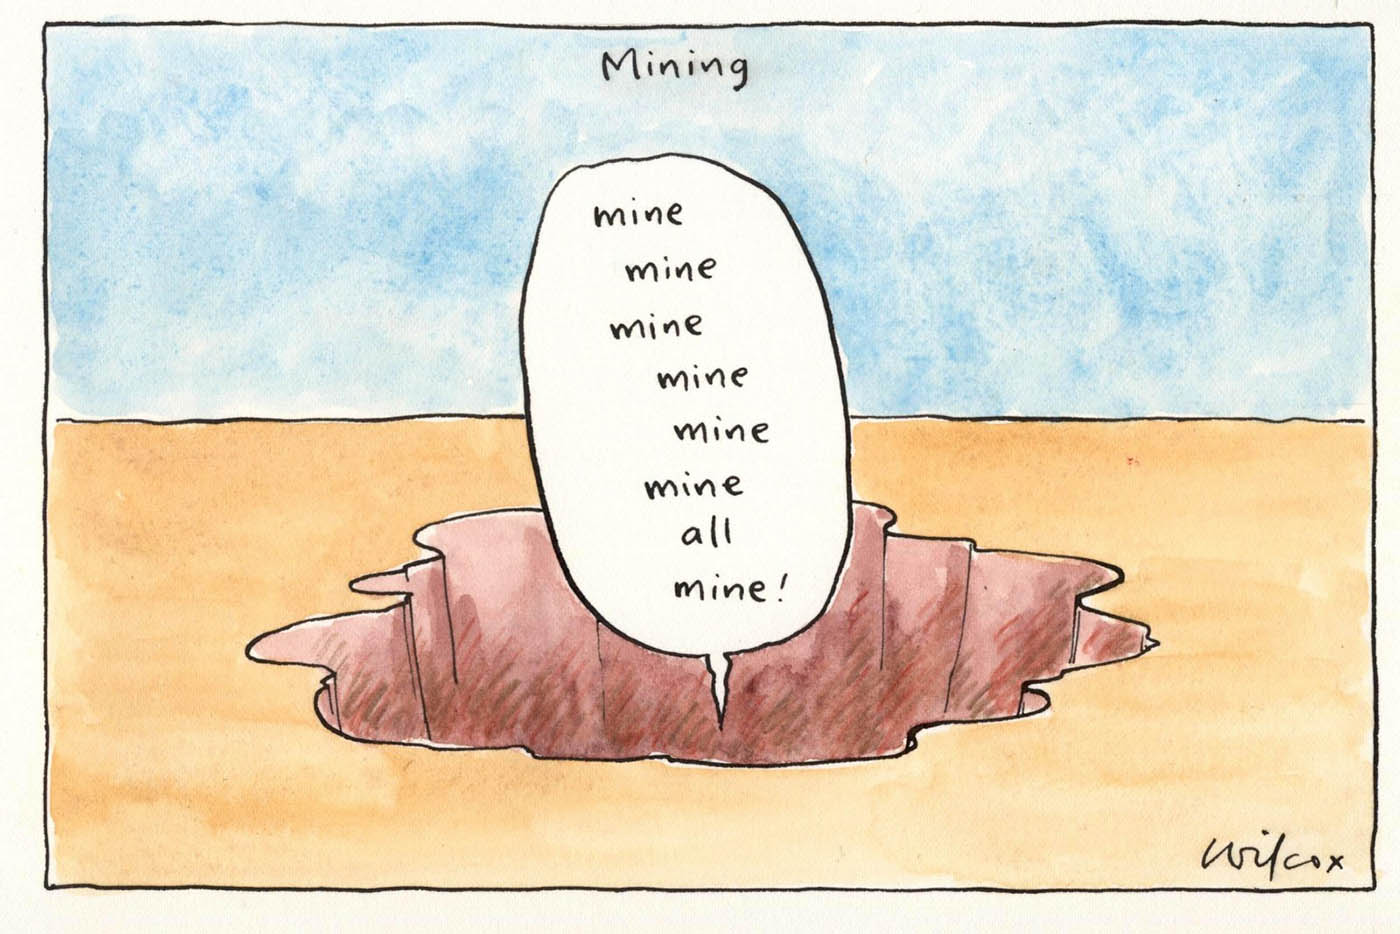 A colour cartoon depicting a hole in the ground. A speech bubble emerges from the hole. In it is written 'Mine mine mine mine mine mine all mine!' At the top of the cartoon is written 'Mining'.  - click to view larger image